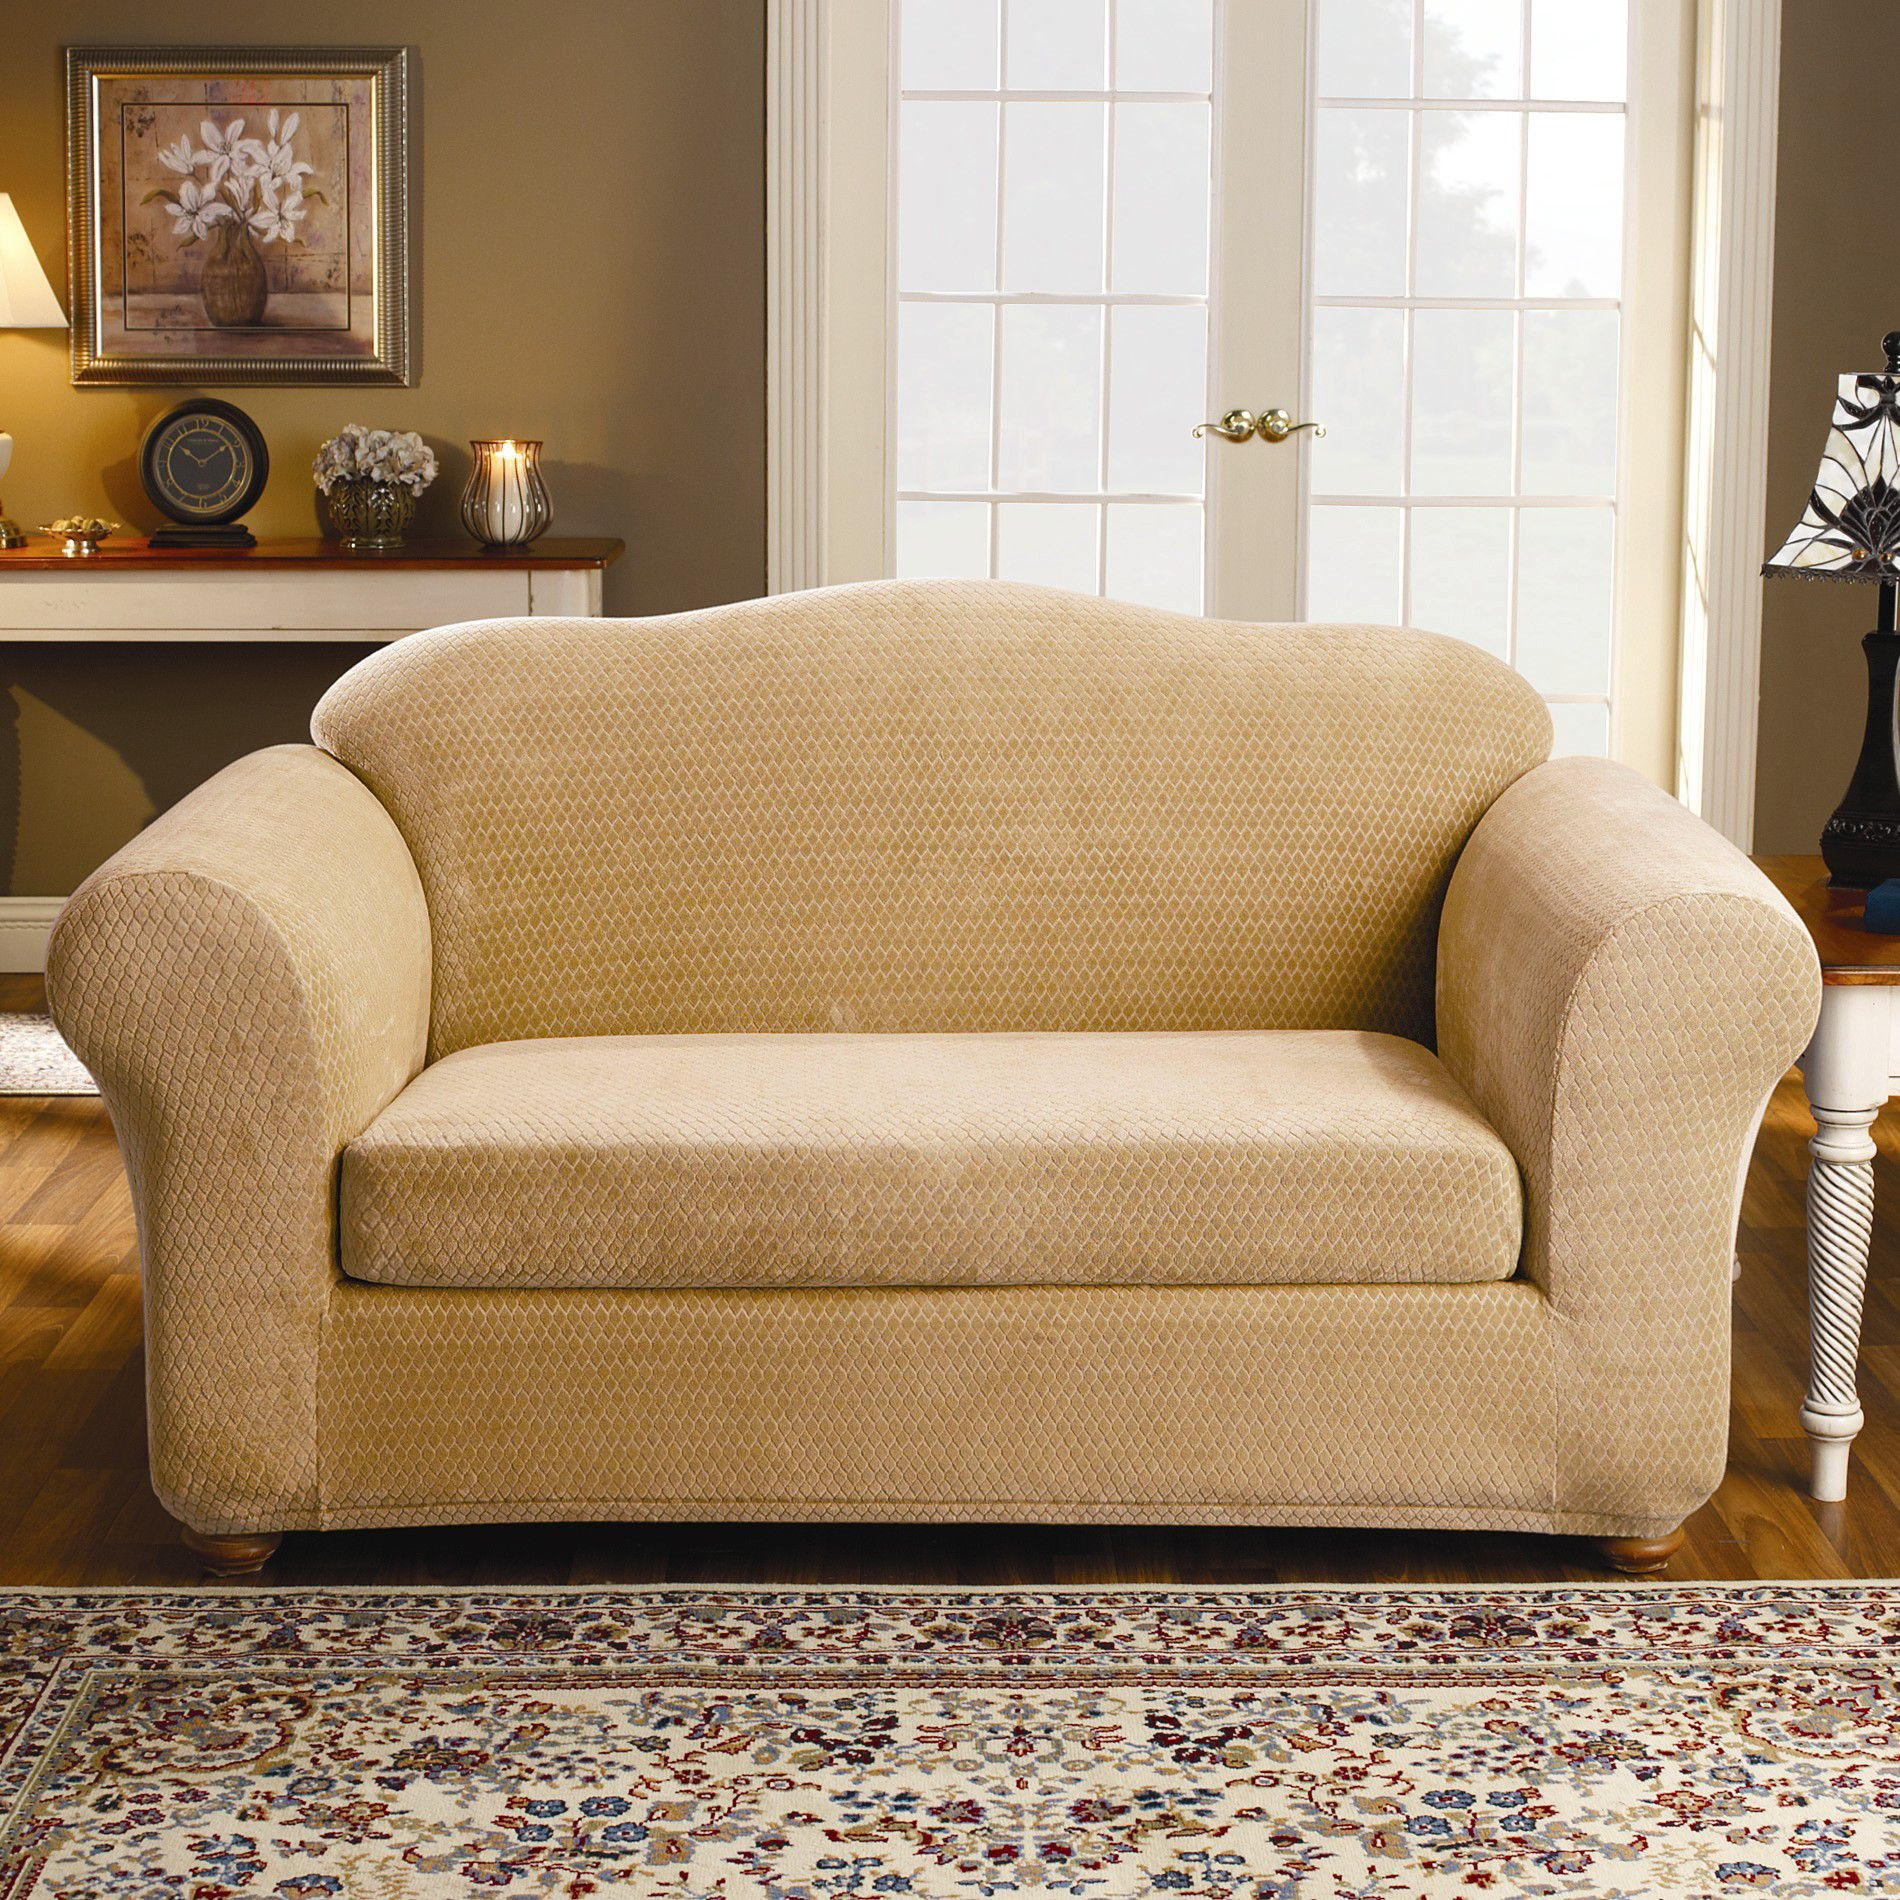 sofa covers at kmart 4 seater bed leather sure fit stretch royal diamond wine loveseat slipcover